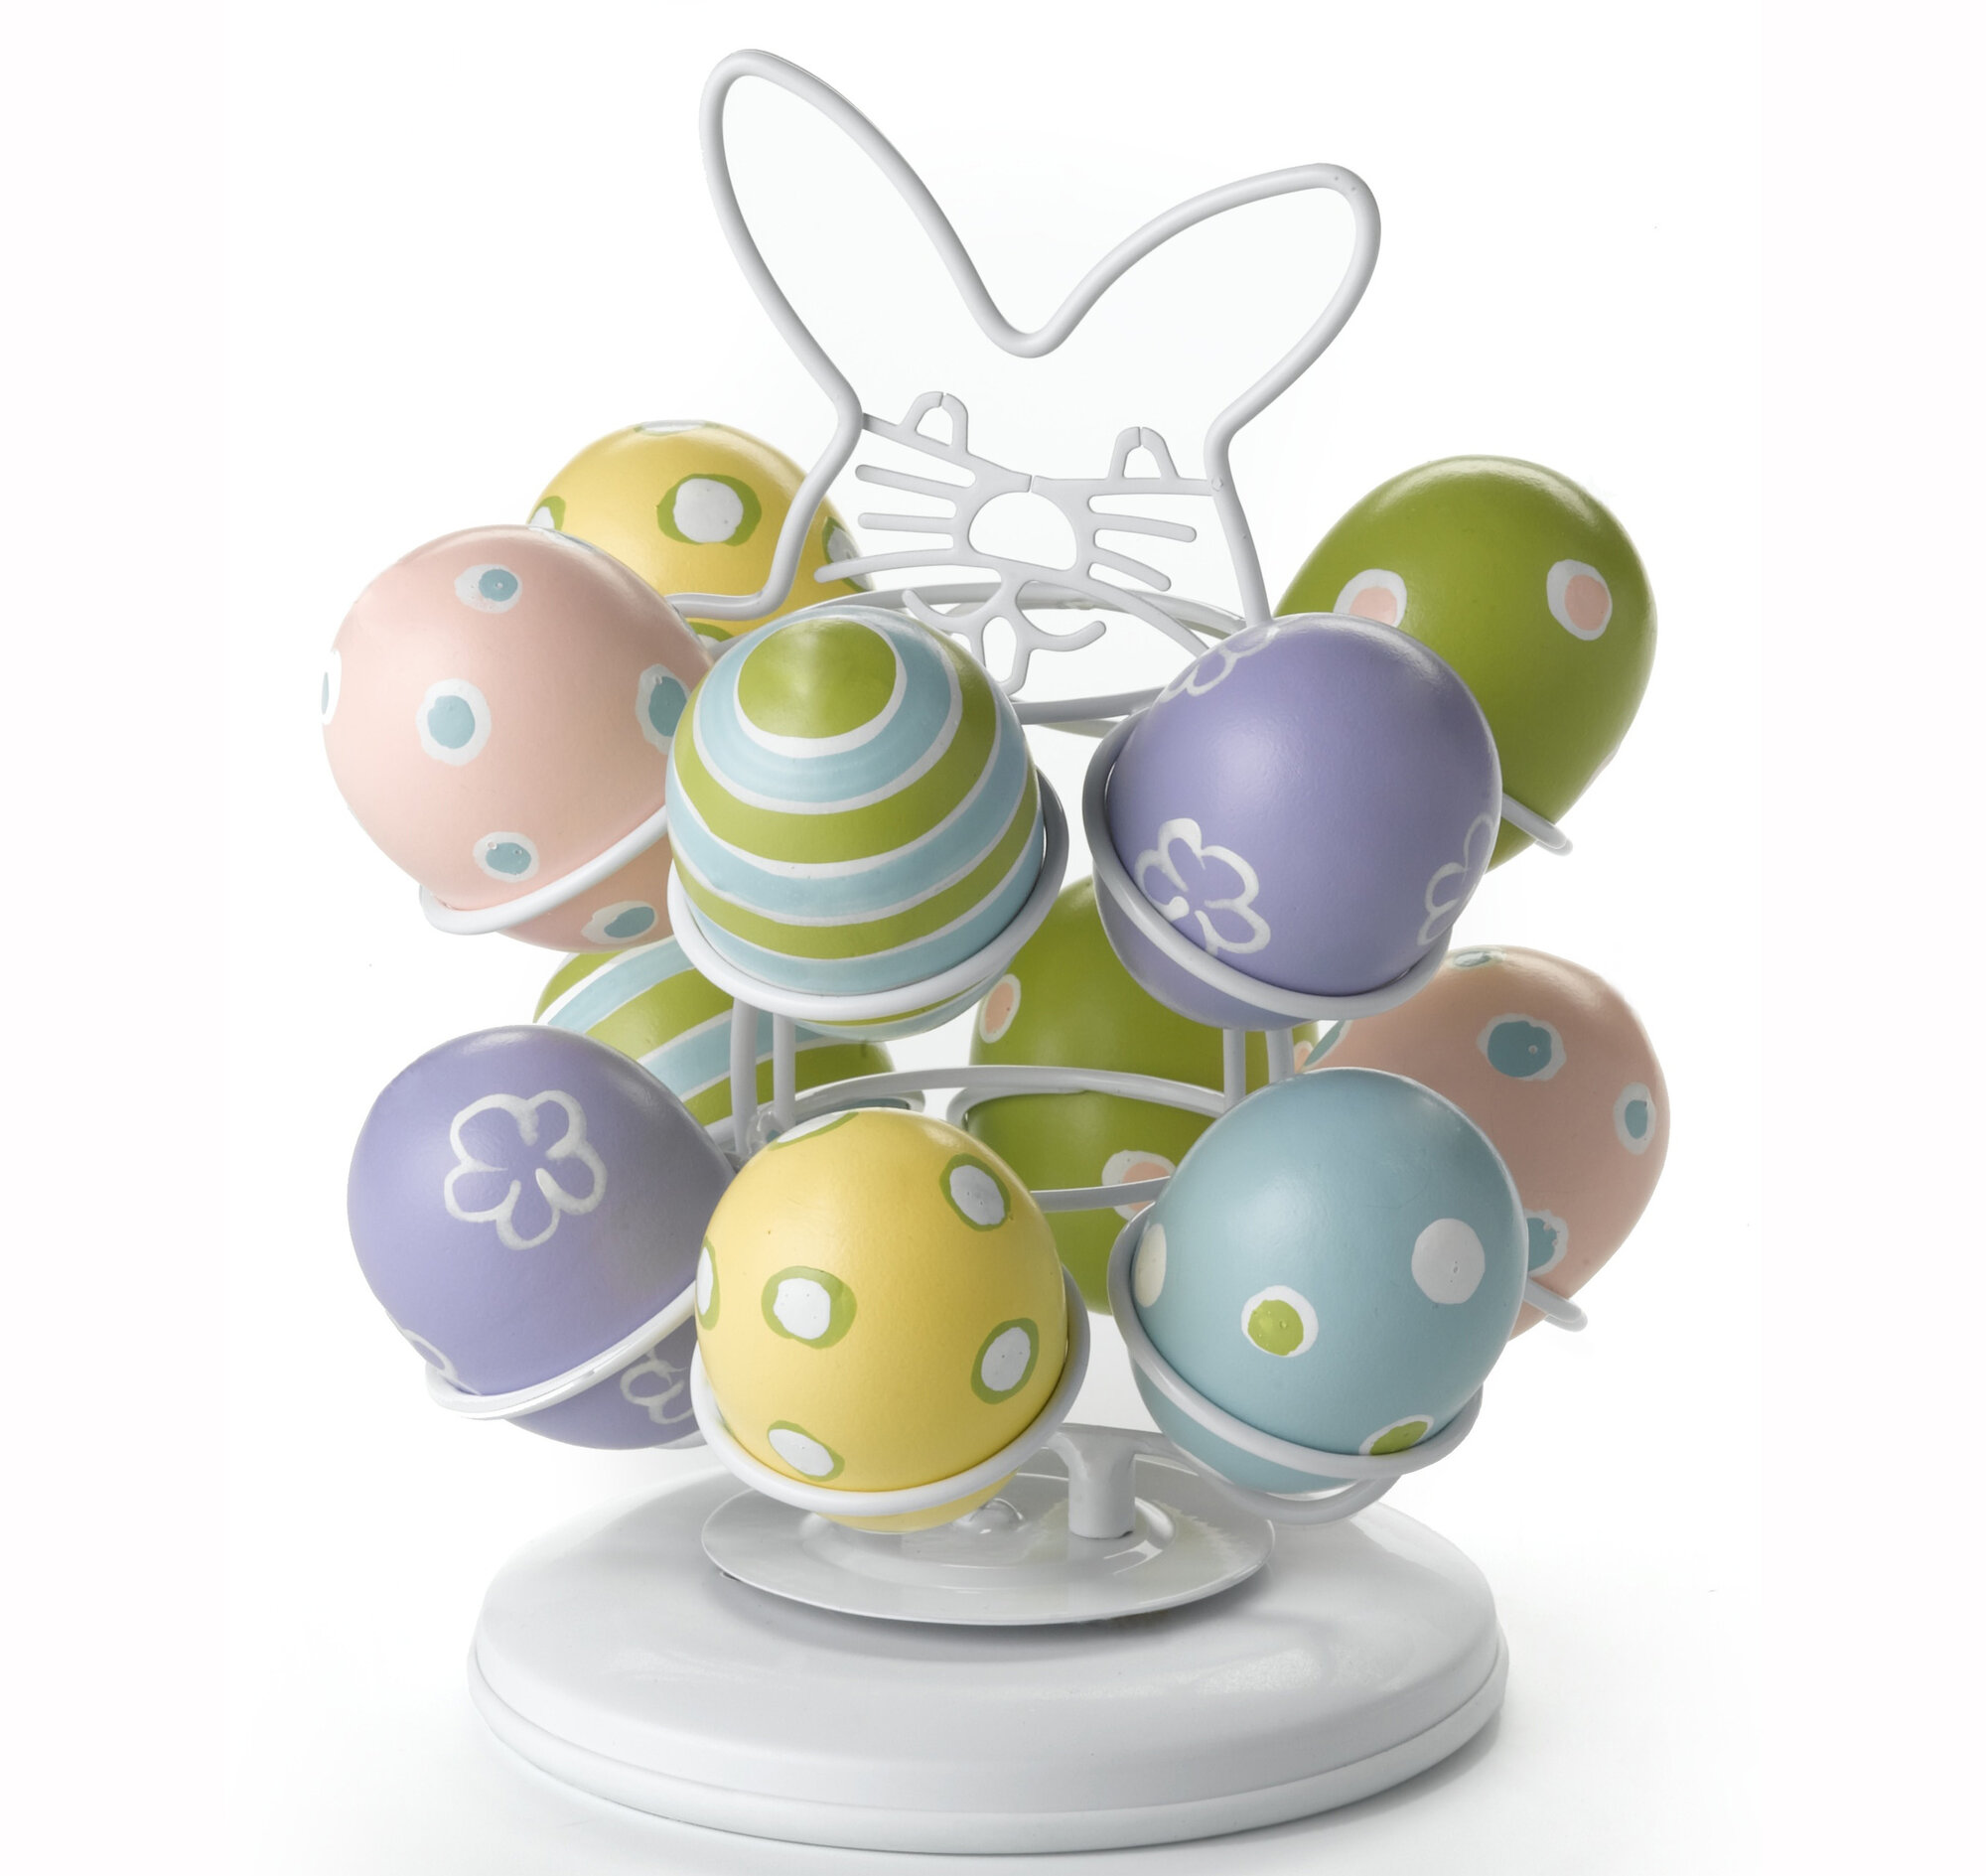 Nifty Home Products Easter Egg Carousel